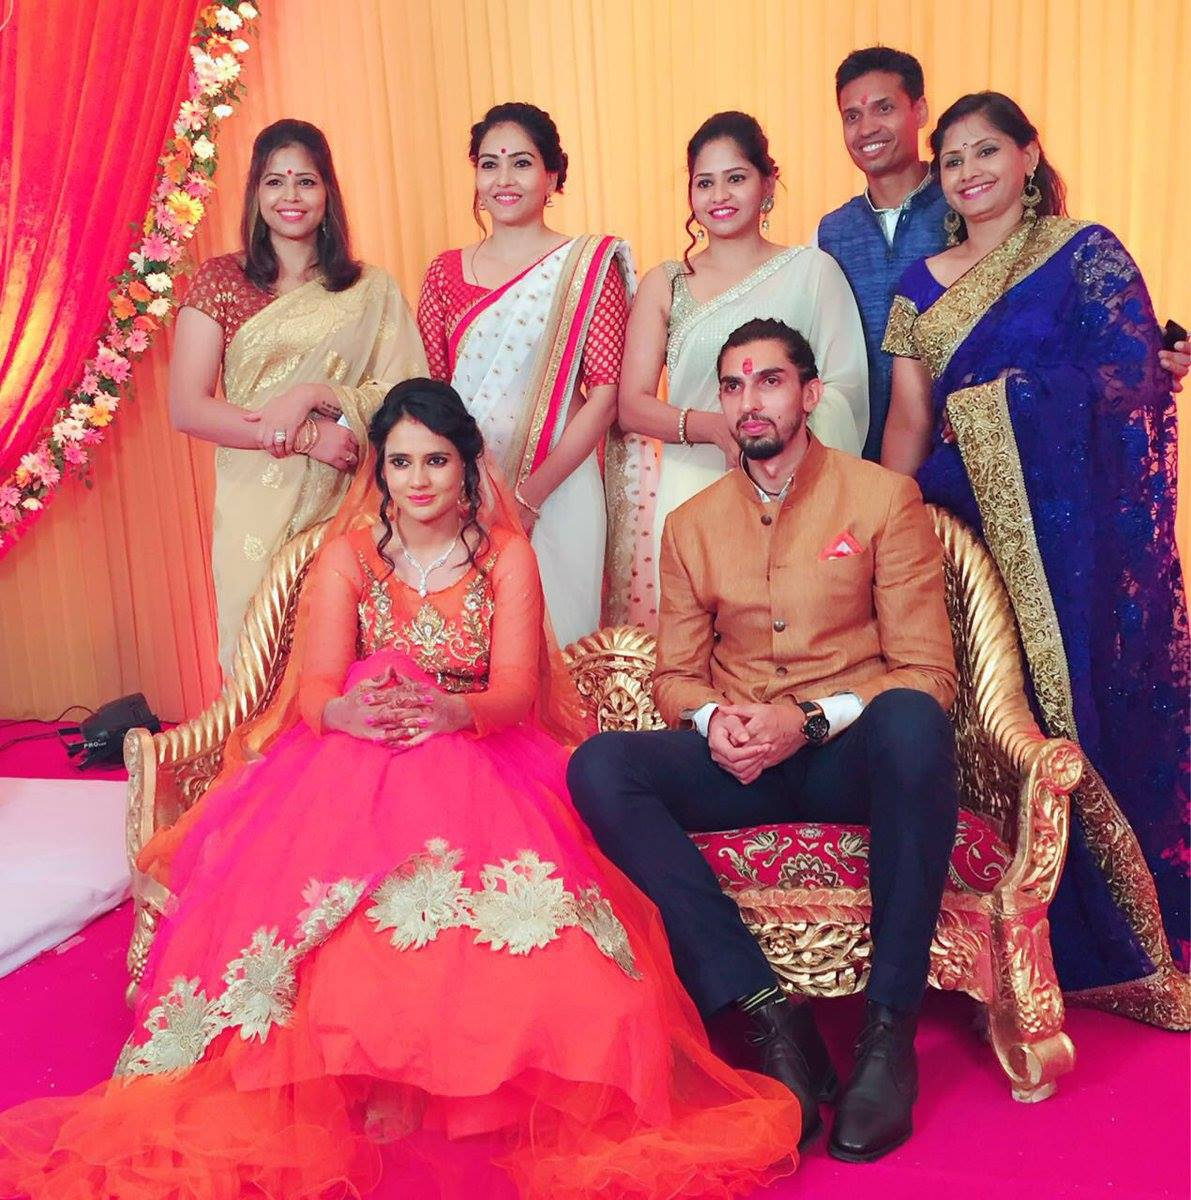 Indians in australia dating and marriage